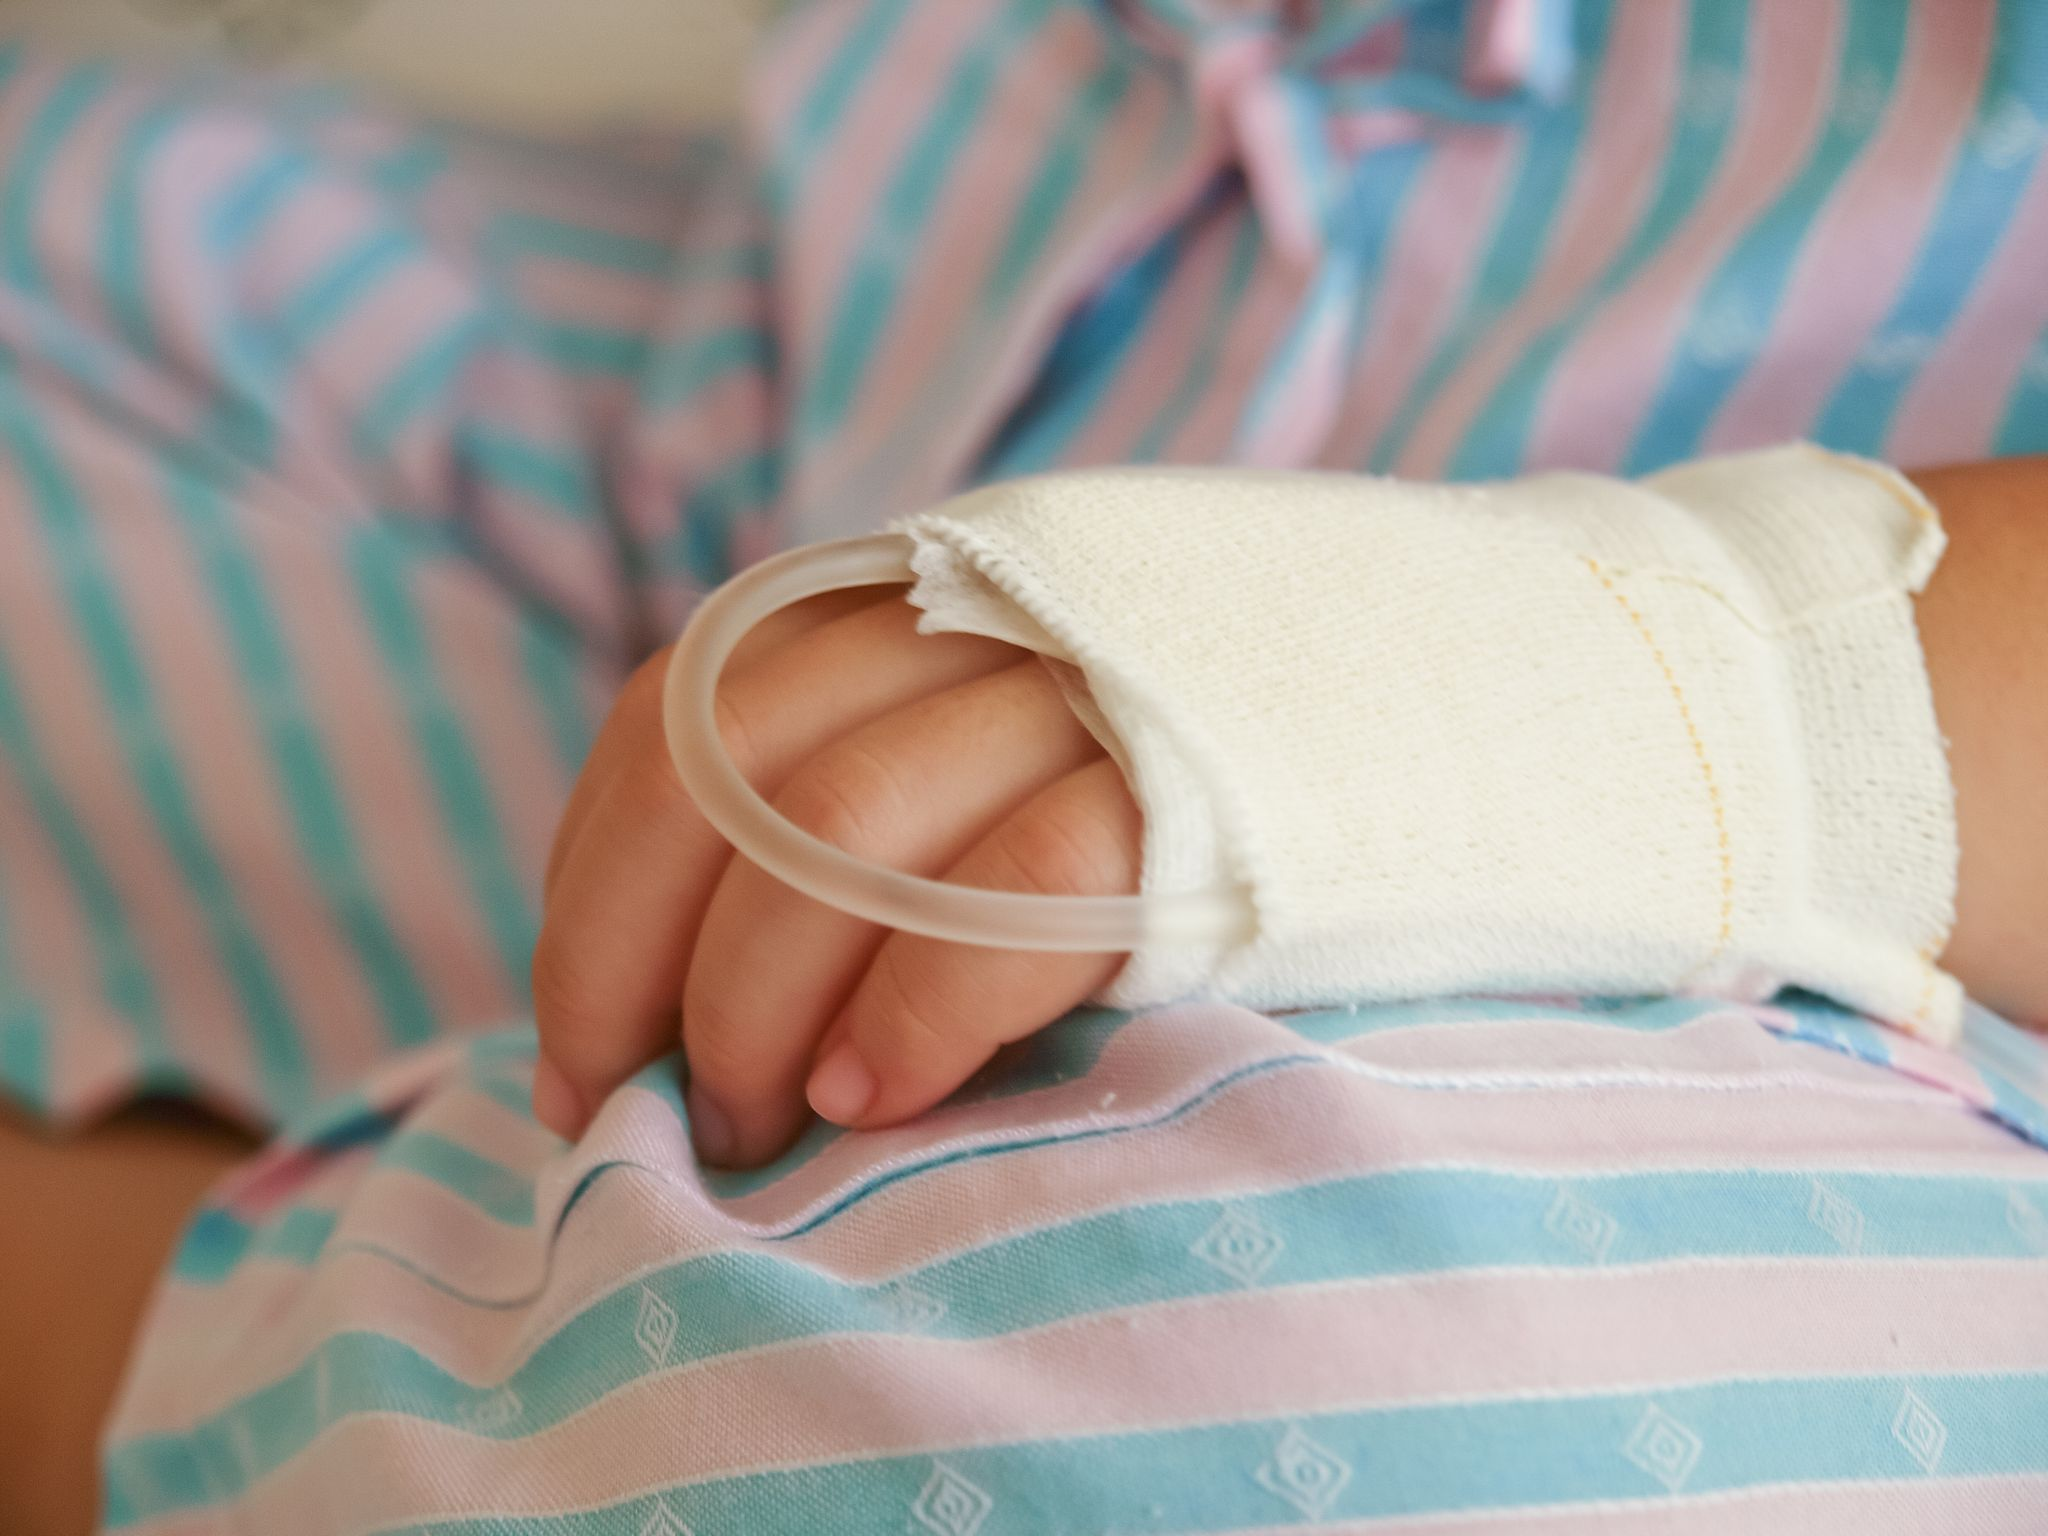 Kid with a bandaged hand lying in hospital. | Source: Shutterstock